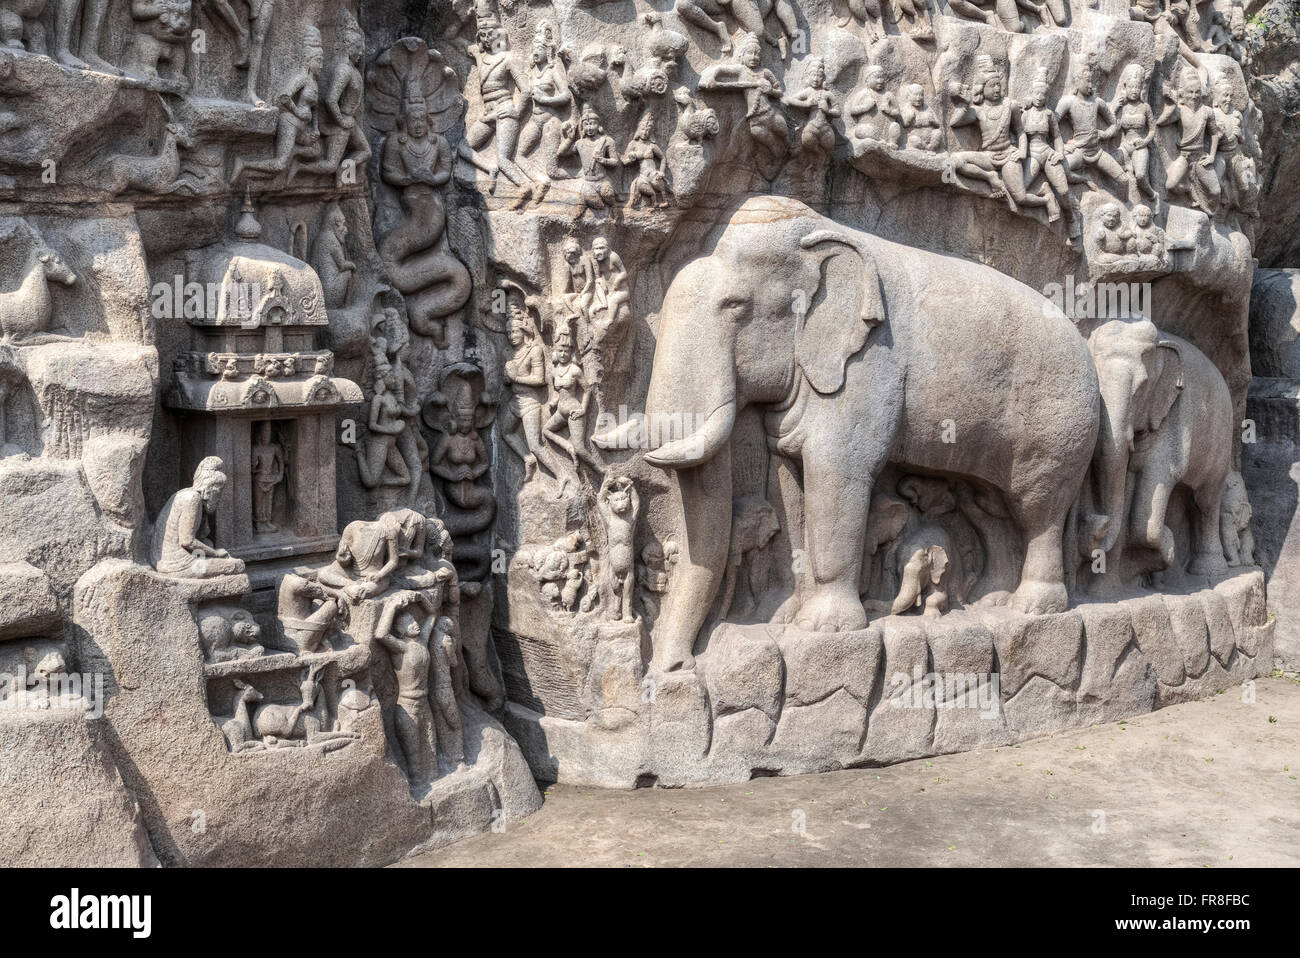 Descent of the Ganges, Mahabalipuram, Tamil Nadu, India, Asia - Stock Image